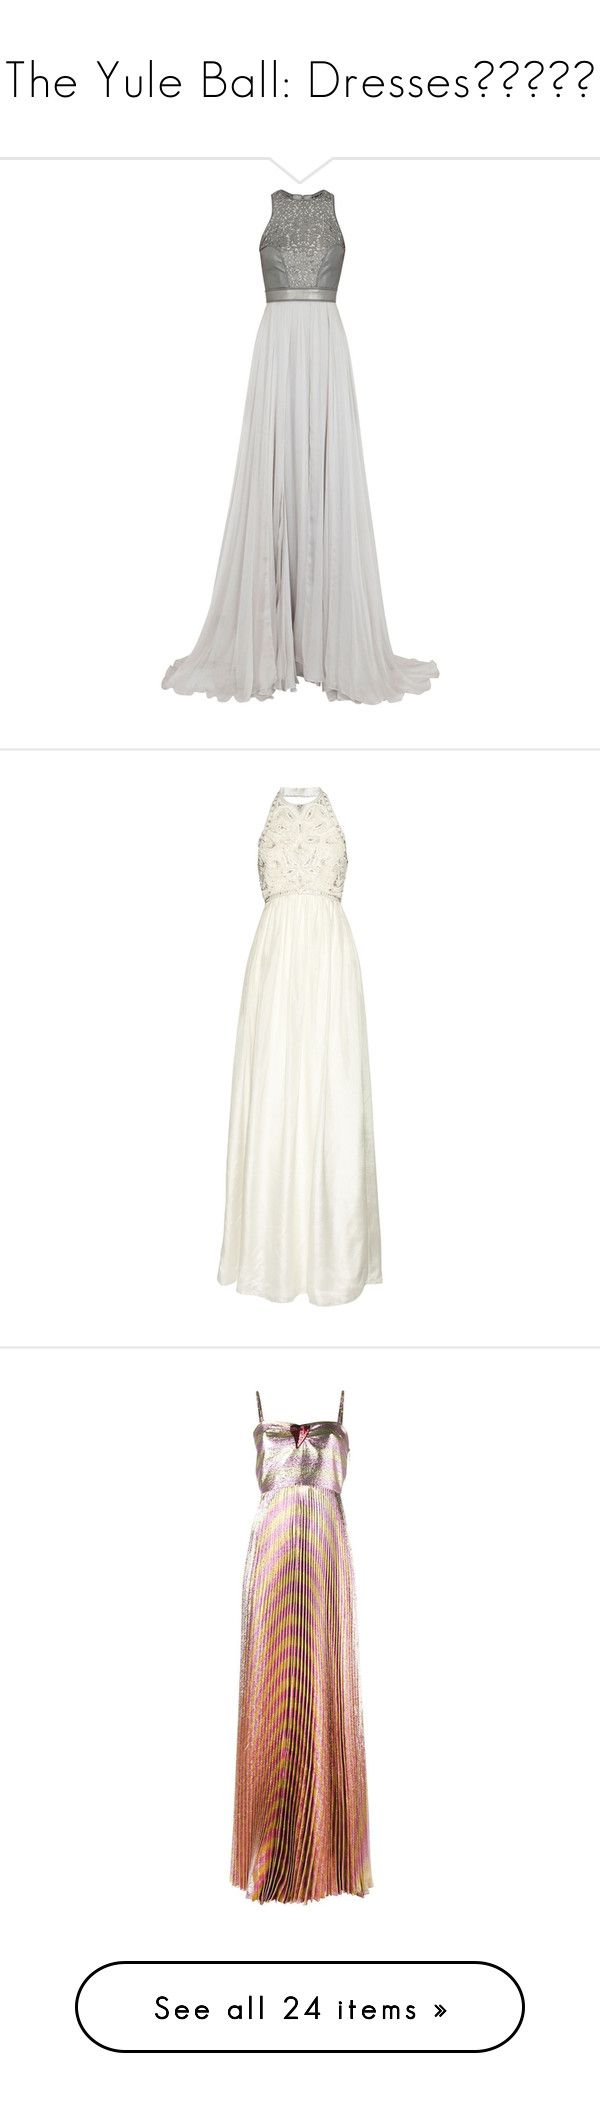 """""""The Yule Ball: Dresses💚💙💛❤️"""" by nattiexo ❤ liked on Polyvore featuring dresses, gowns, vestidos, long dresses, grey dress, grey evening gowns, grey gown, gray evening gown, long grey dress and wedding"""